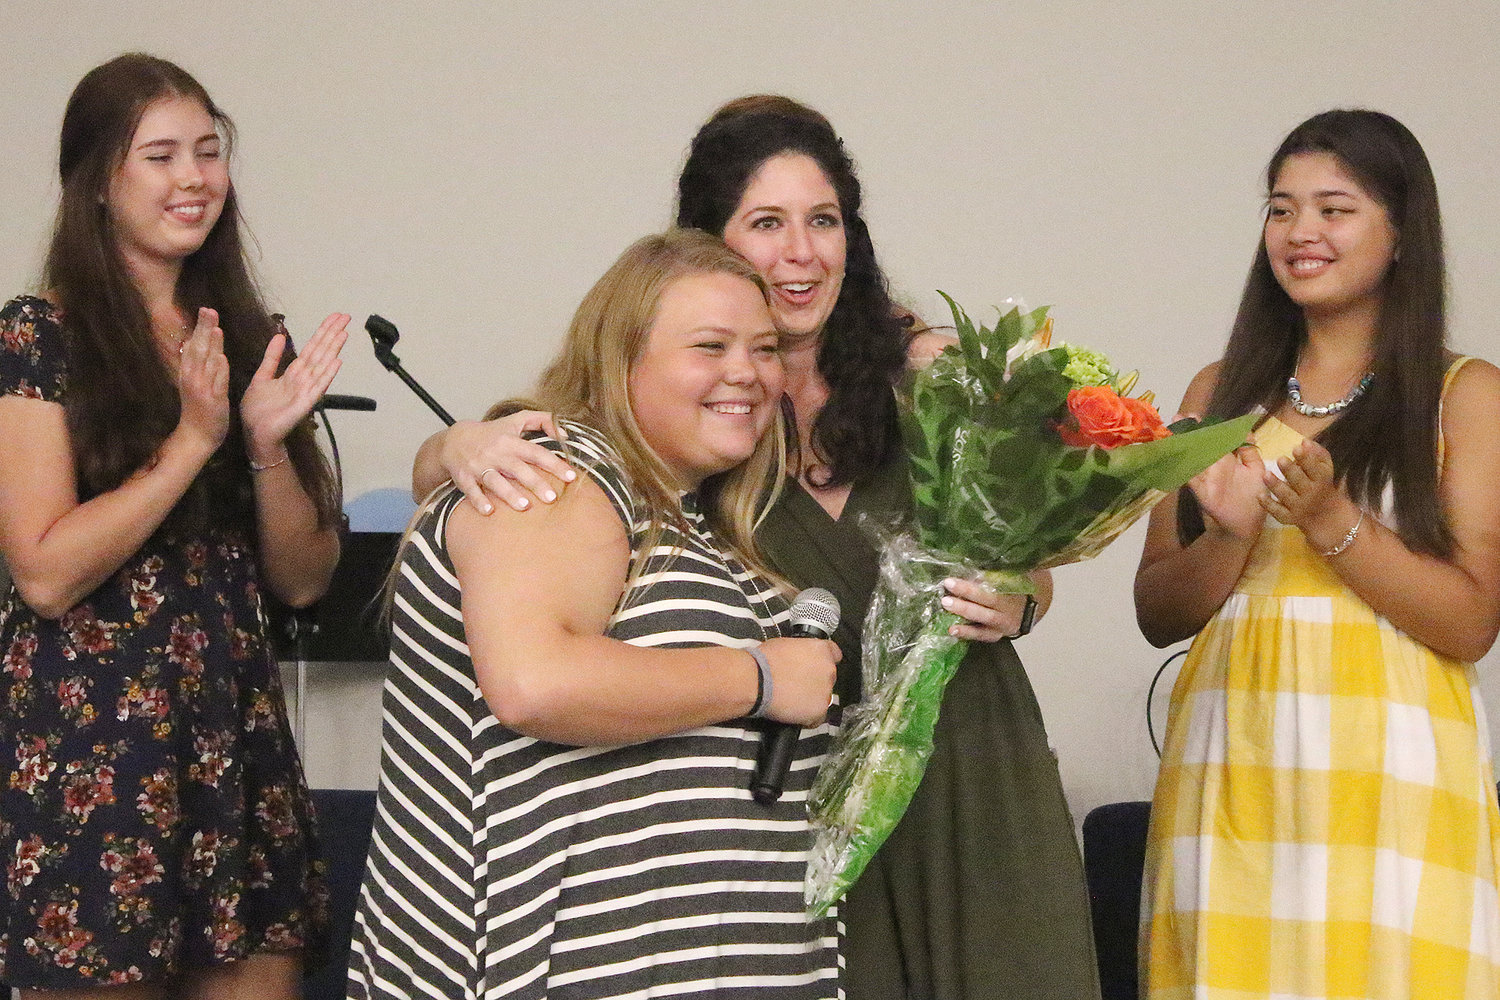 Katie Mahnken received flowers for her dedication to the girls. She is a Program Coordinator with The Greatest Exchange and lives in Kazakhstan for six months each year to find young women to participate in the program.